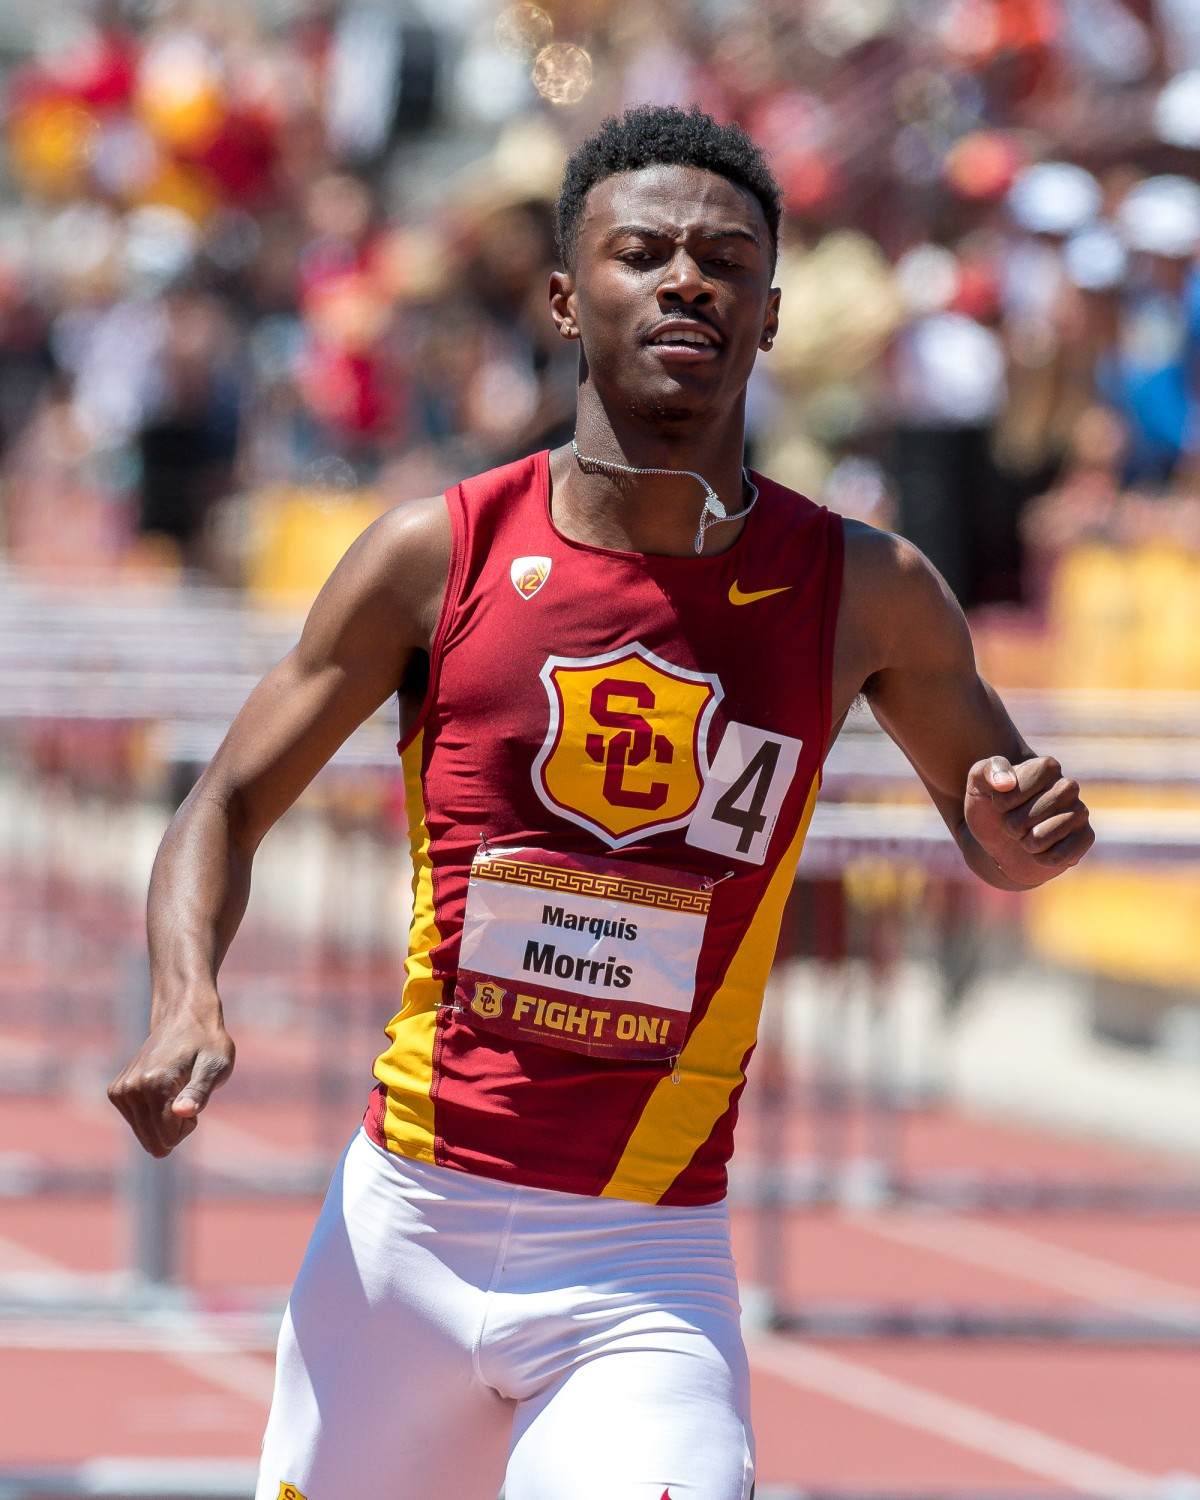 ucla vs usc track meet results